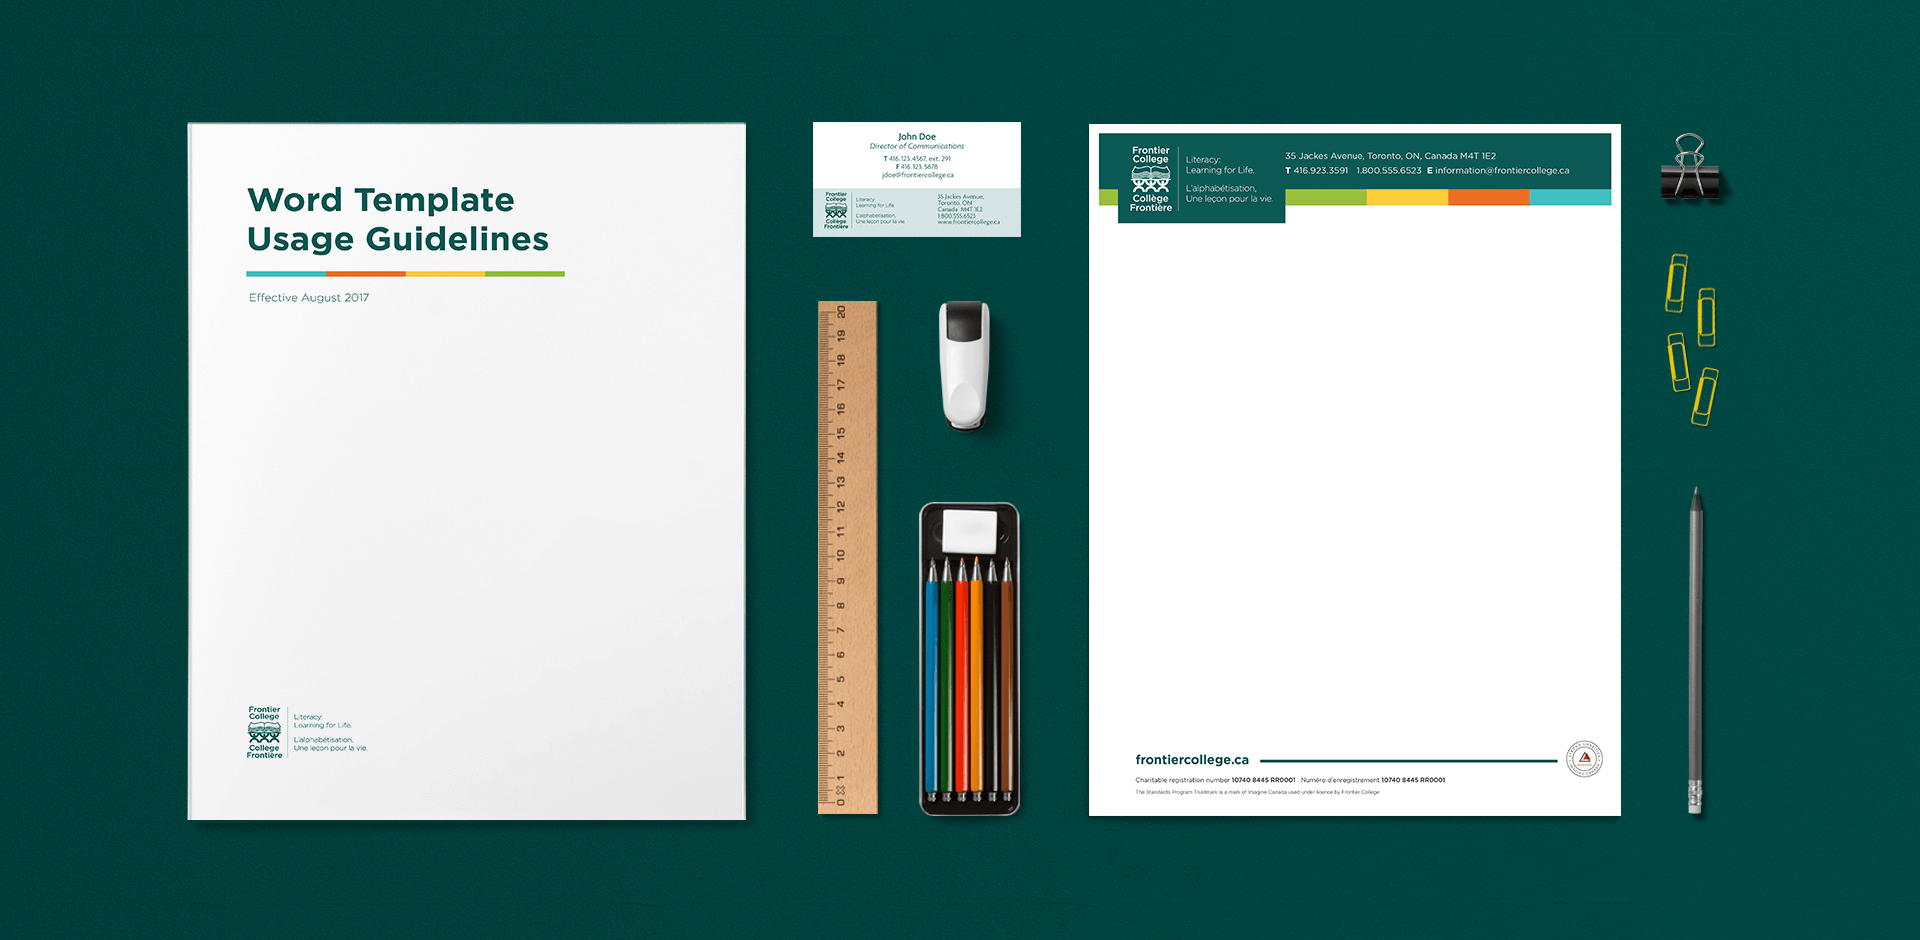 Frontier College letterhead, business card and Microsoft Word template guidelines designed by Gravity Inc